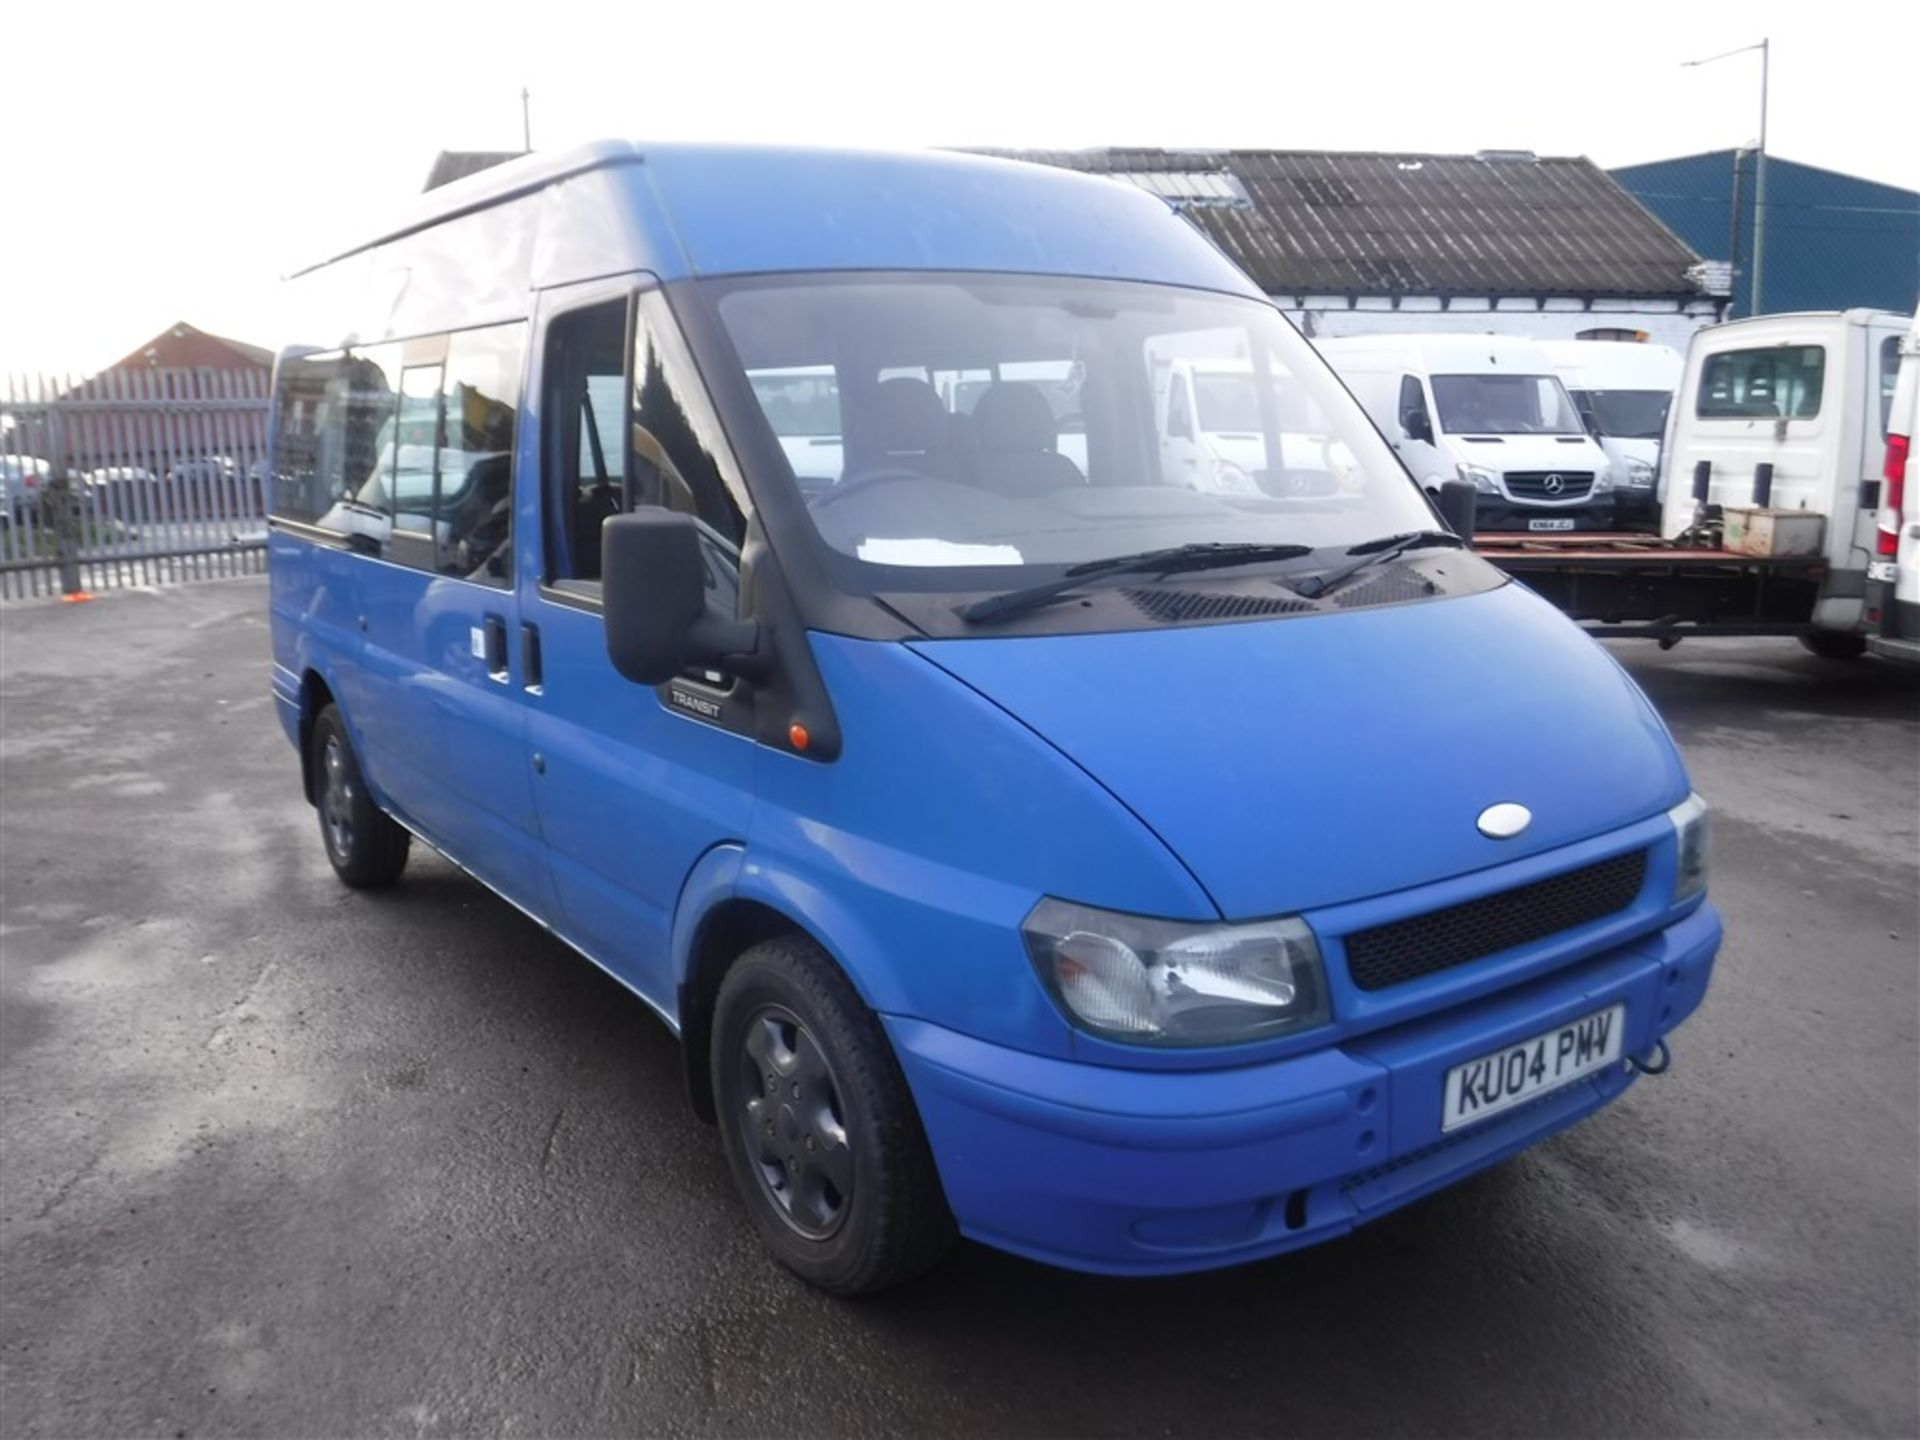 Lot 50 - 04 reg FORD TRANSIT MWB MINIBUS, 1ST REG 03/04, TEST 04/19, 161277M, V5 HERE, 5 FORMER KEEPERS [NO